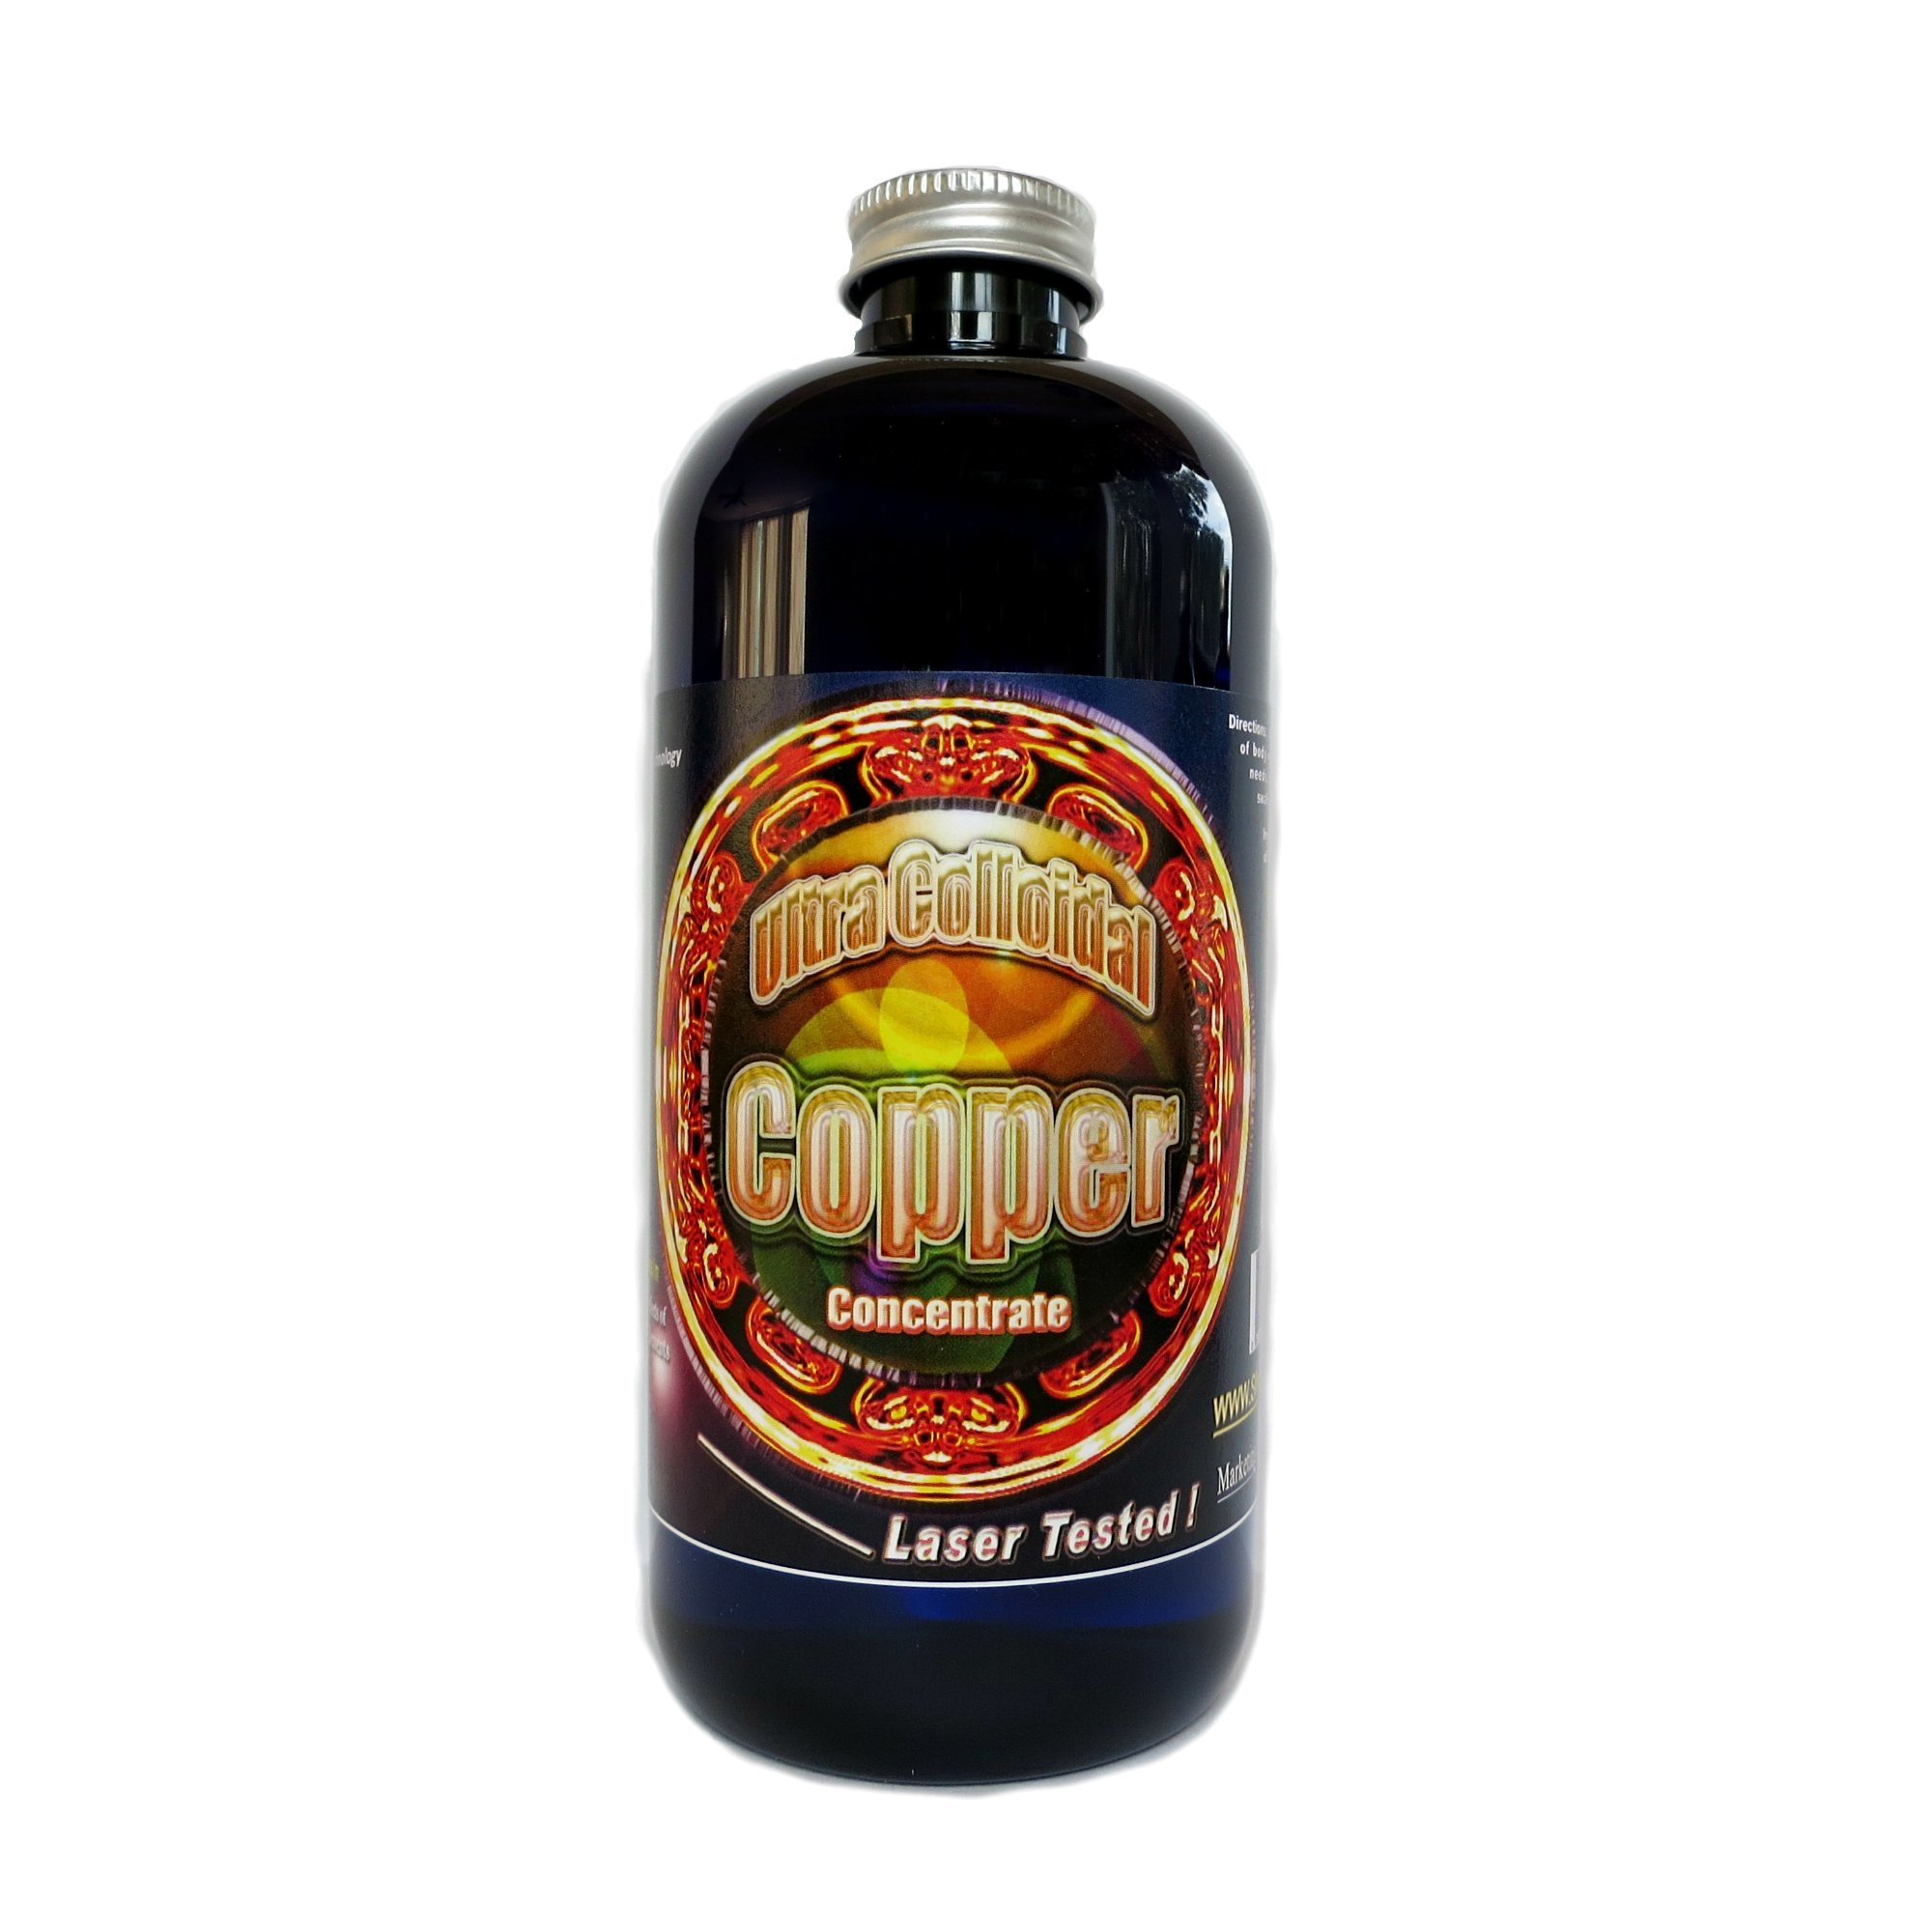 Colloidal Copper Ultra 100 ppm, 16 Oz, Silver Mountain Minerals ( Medical purity, highest bioavailability)